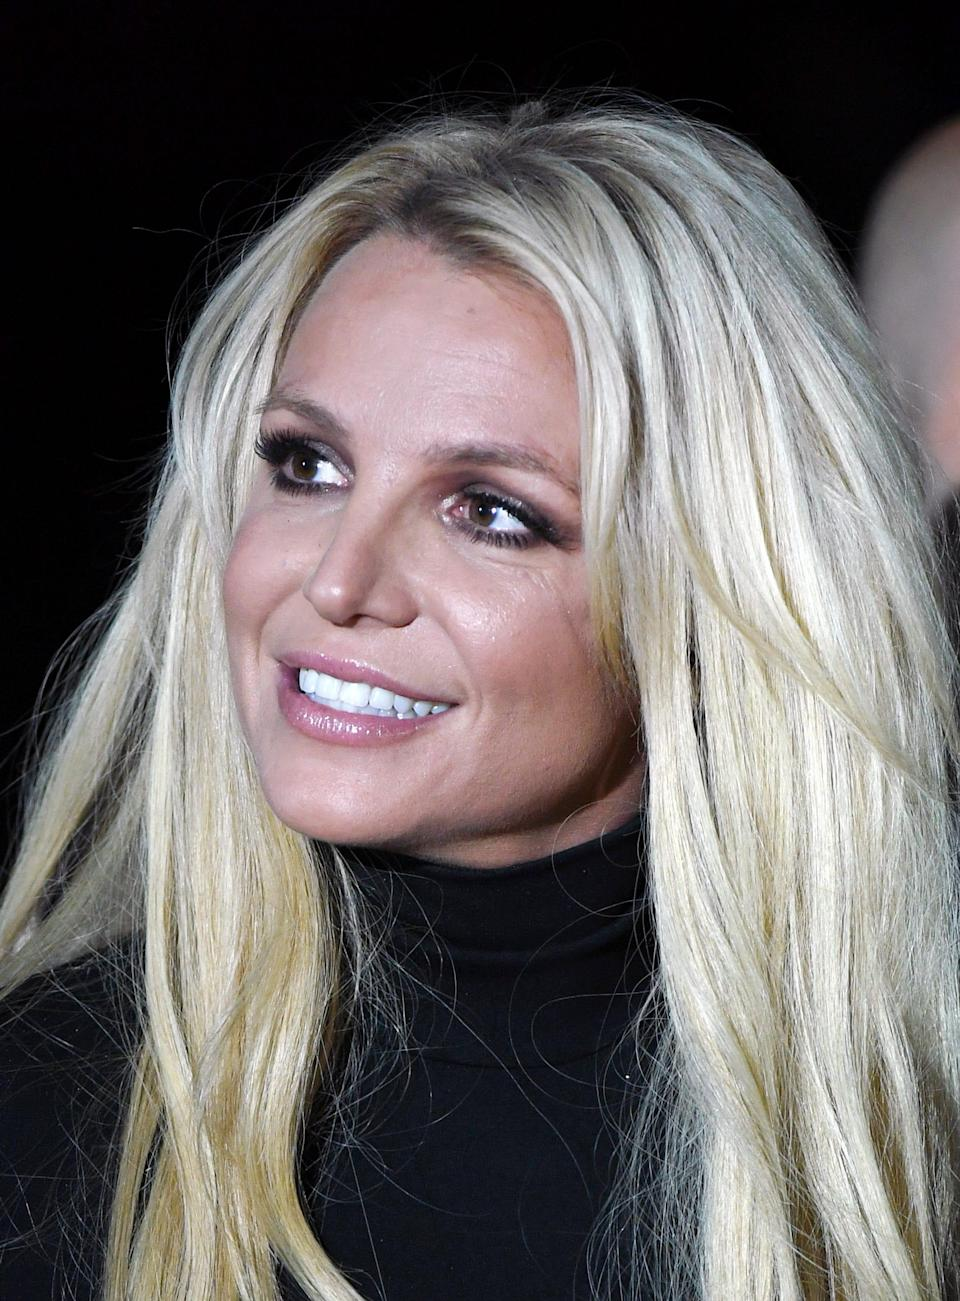 Britney Spears attends the announcement of her Britney: Domination residency at Park MGM on Oct. 18, 2018, in Las Vegas.